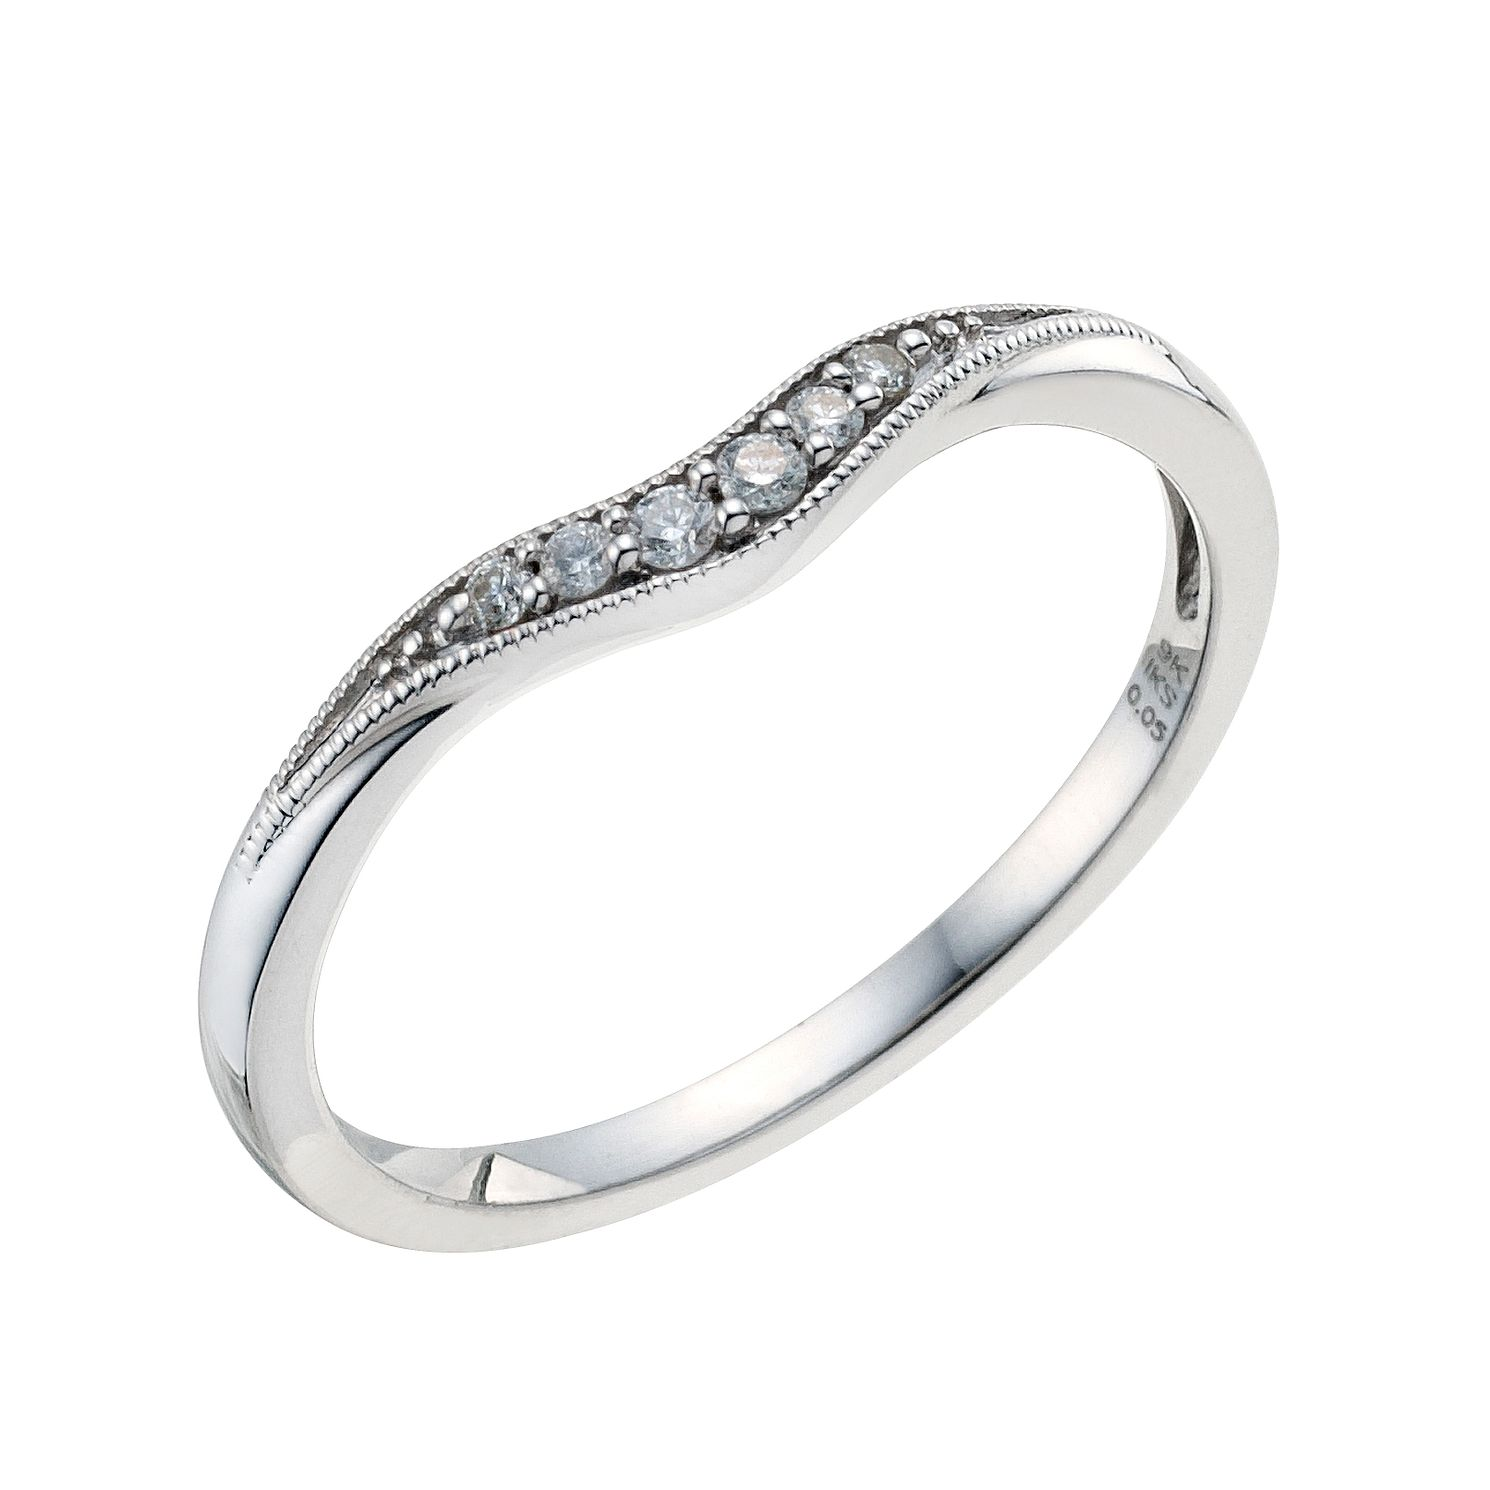 9ct White Gold Shaped Pave Set Diamond Wedding Band - Product number 9193499